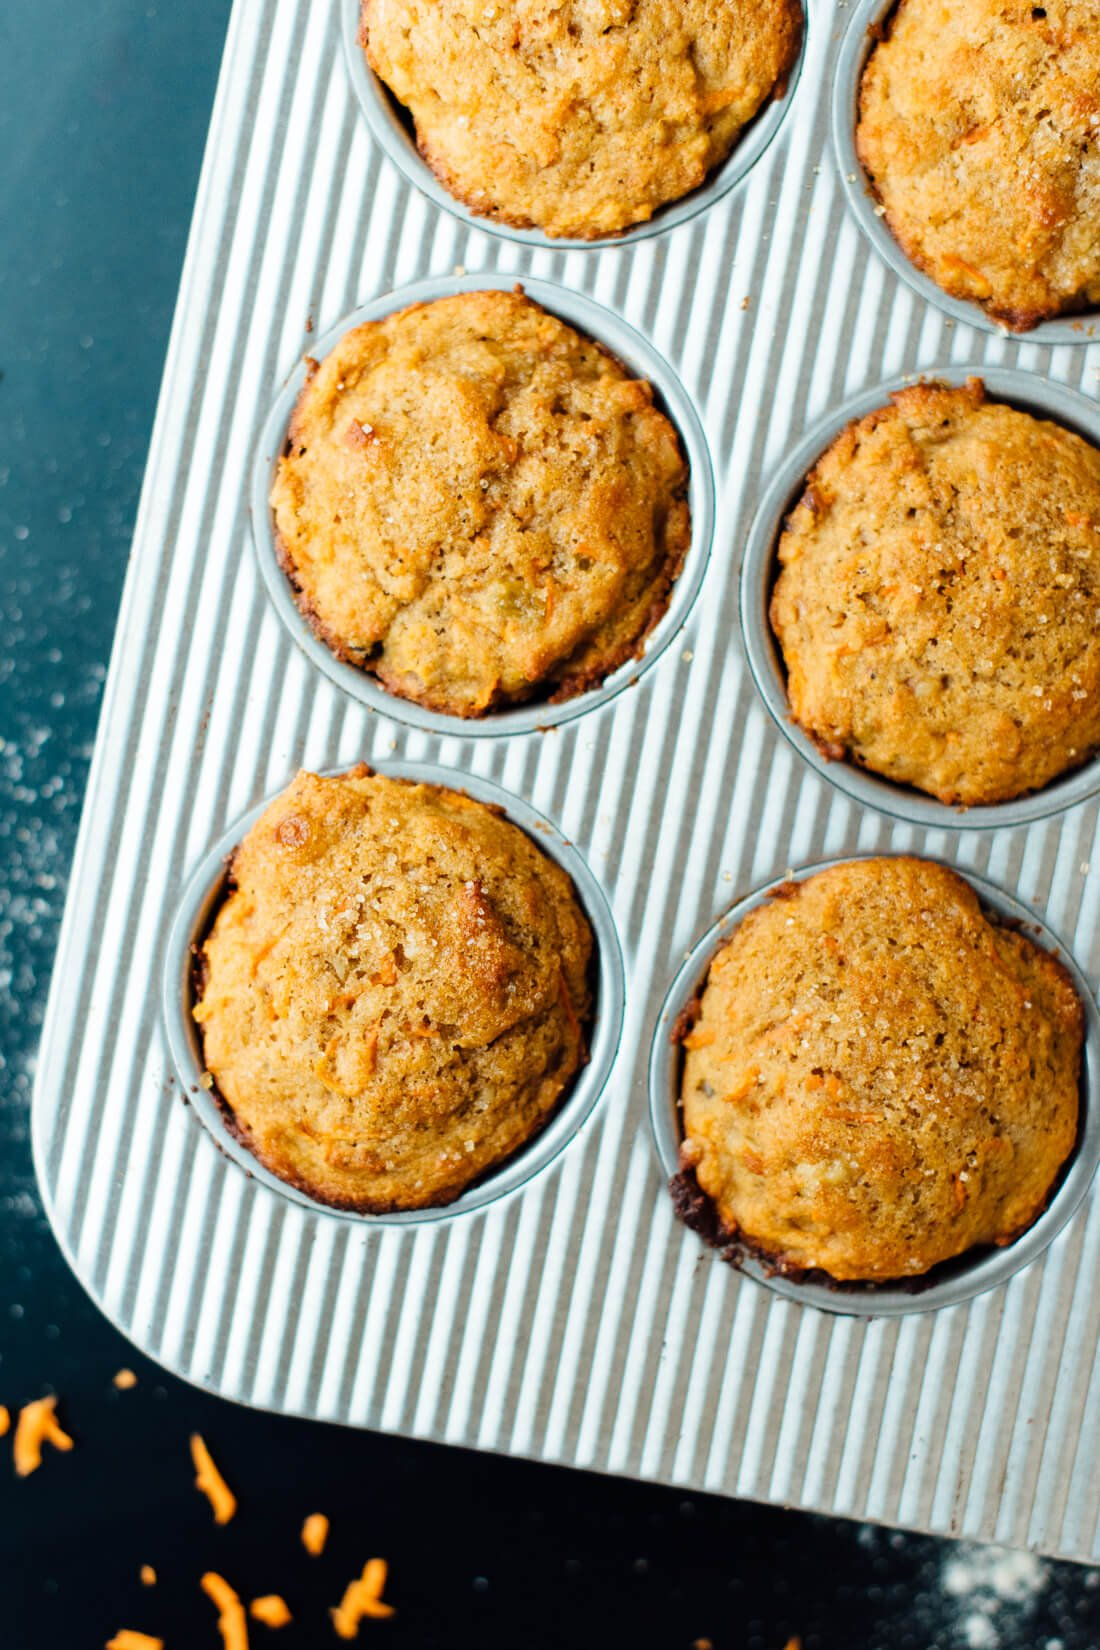 Healthy carrot muffins made with whole wheat flour, coconut oil and maple syrup